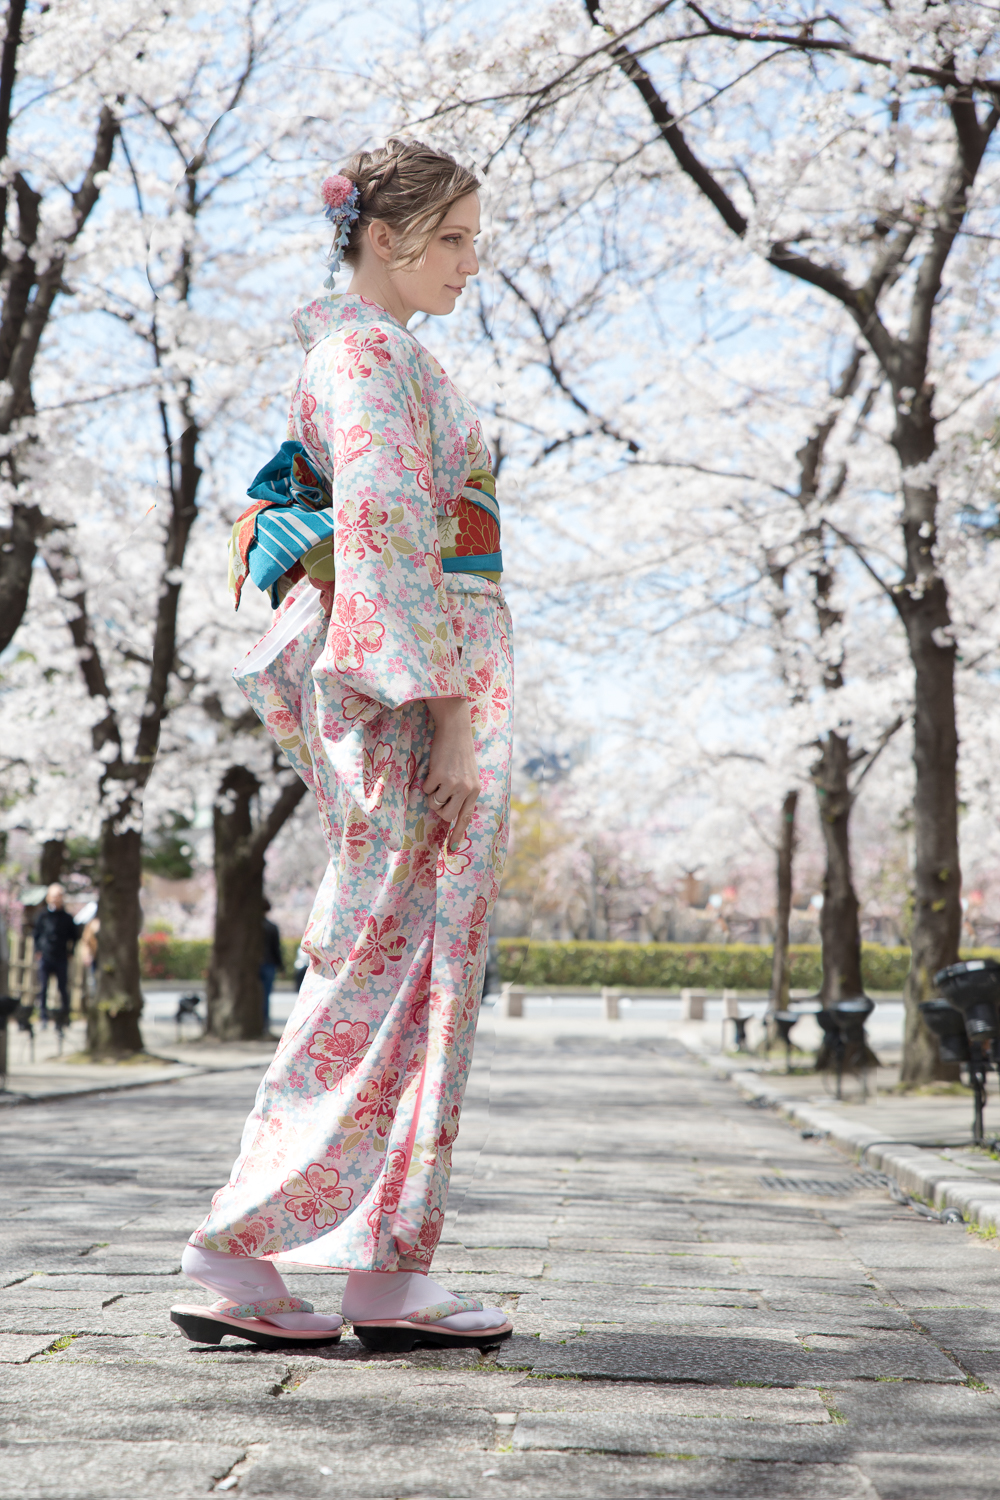 An American model in a kimono during cherry blossom season